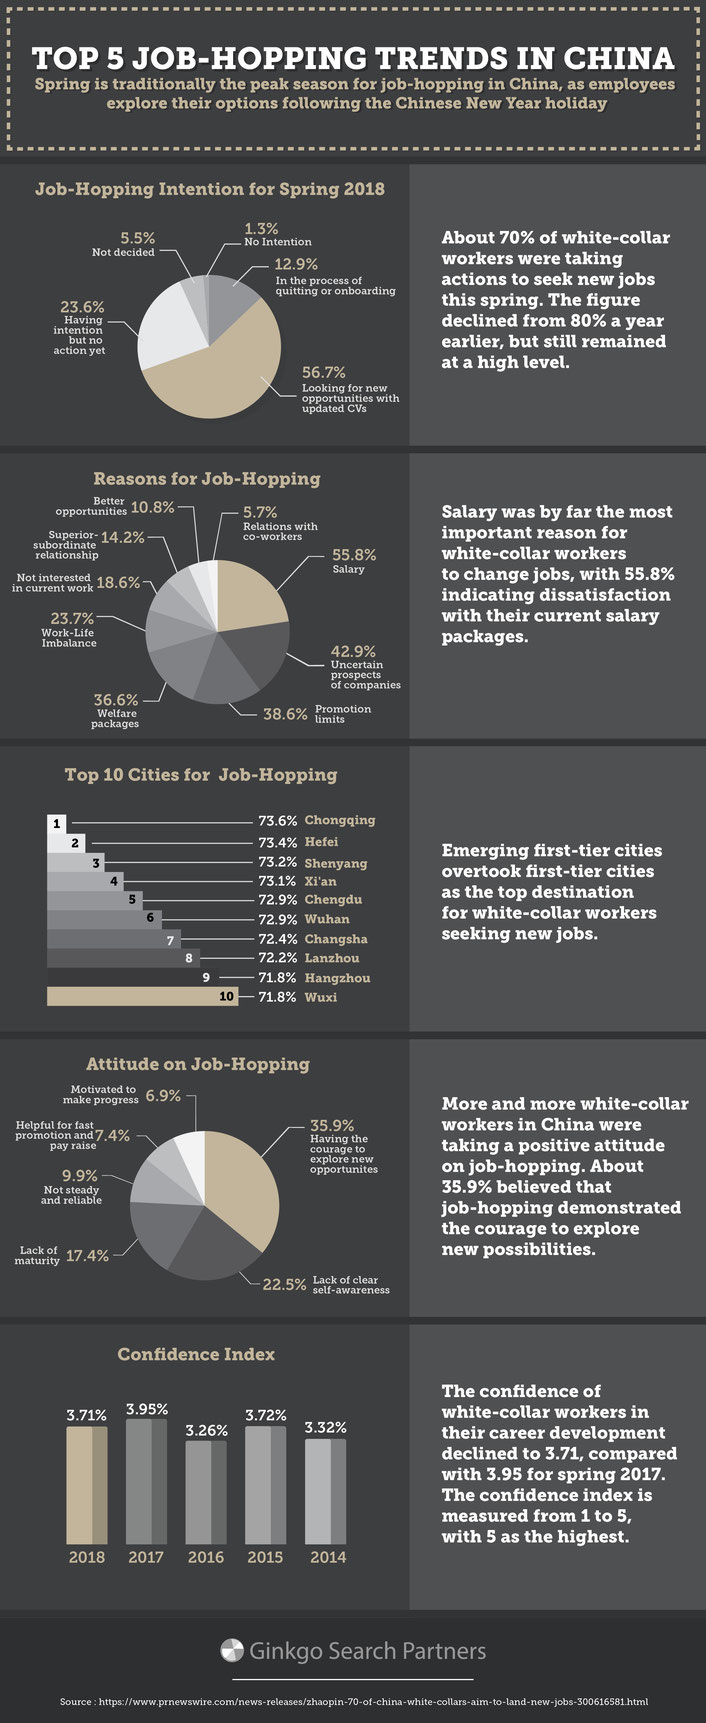 Top-5-Job-Hopping-Trends-China-Infographic